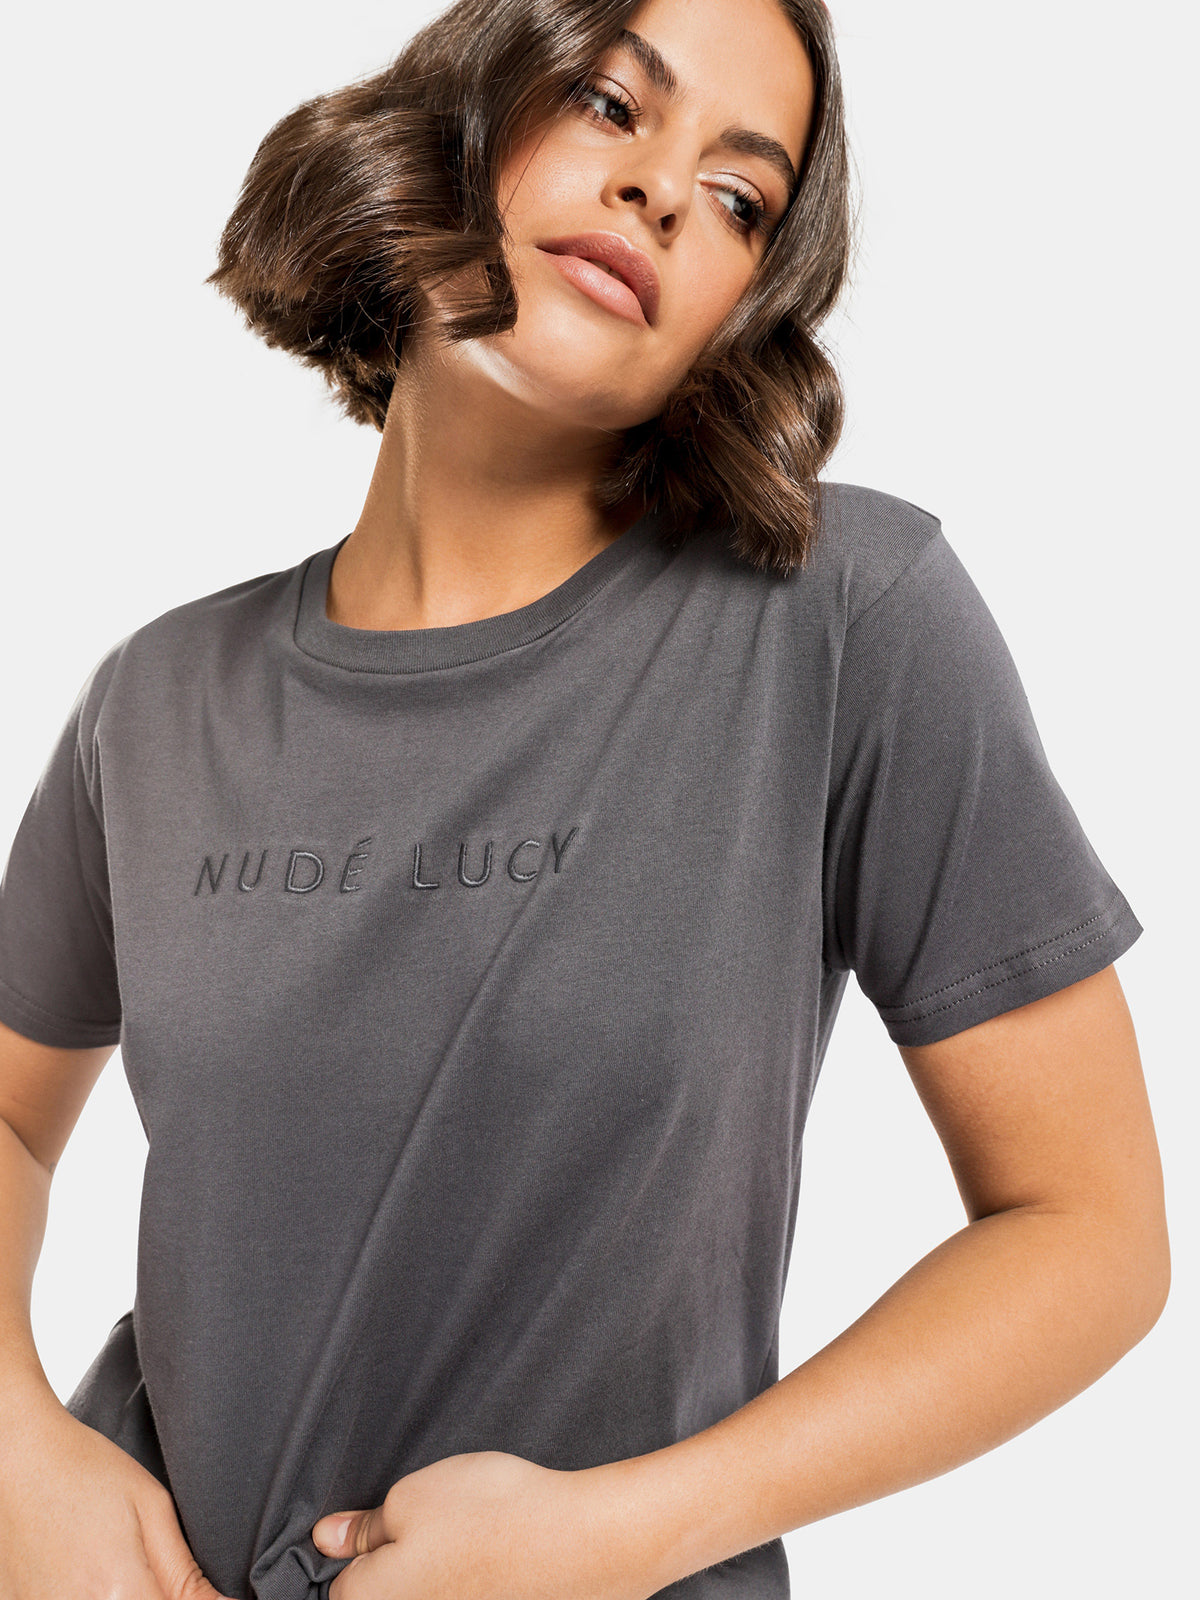 Nude Lucy Slogan T-Shirt in Navy